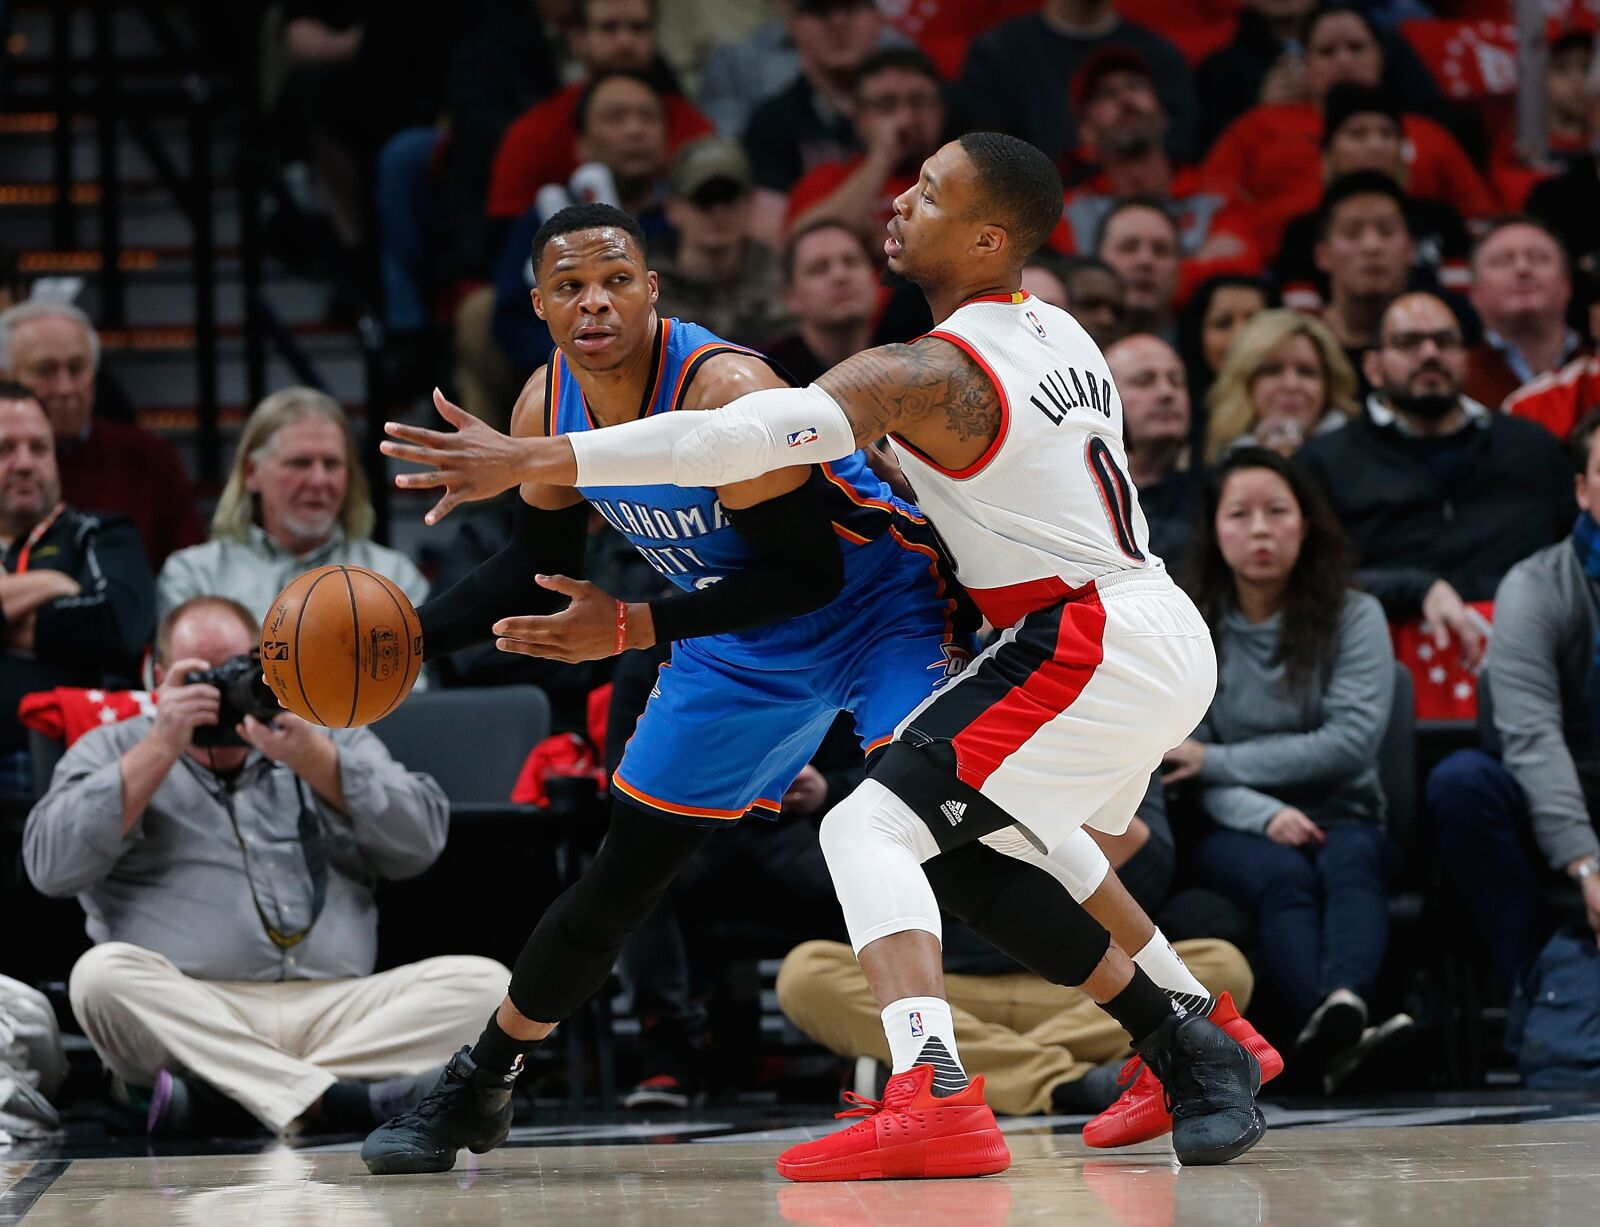 preview okc thunder vs trail blazers going for the sweep